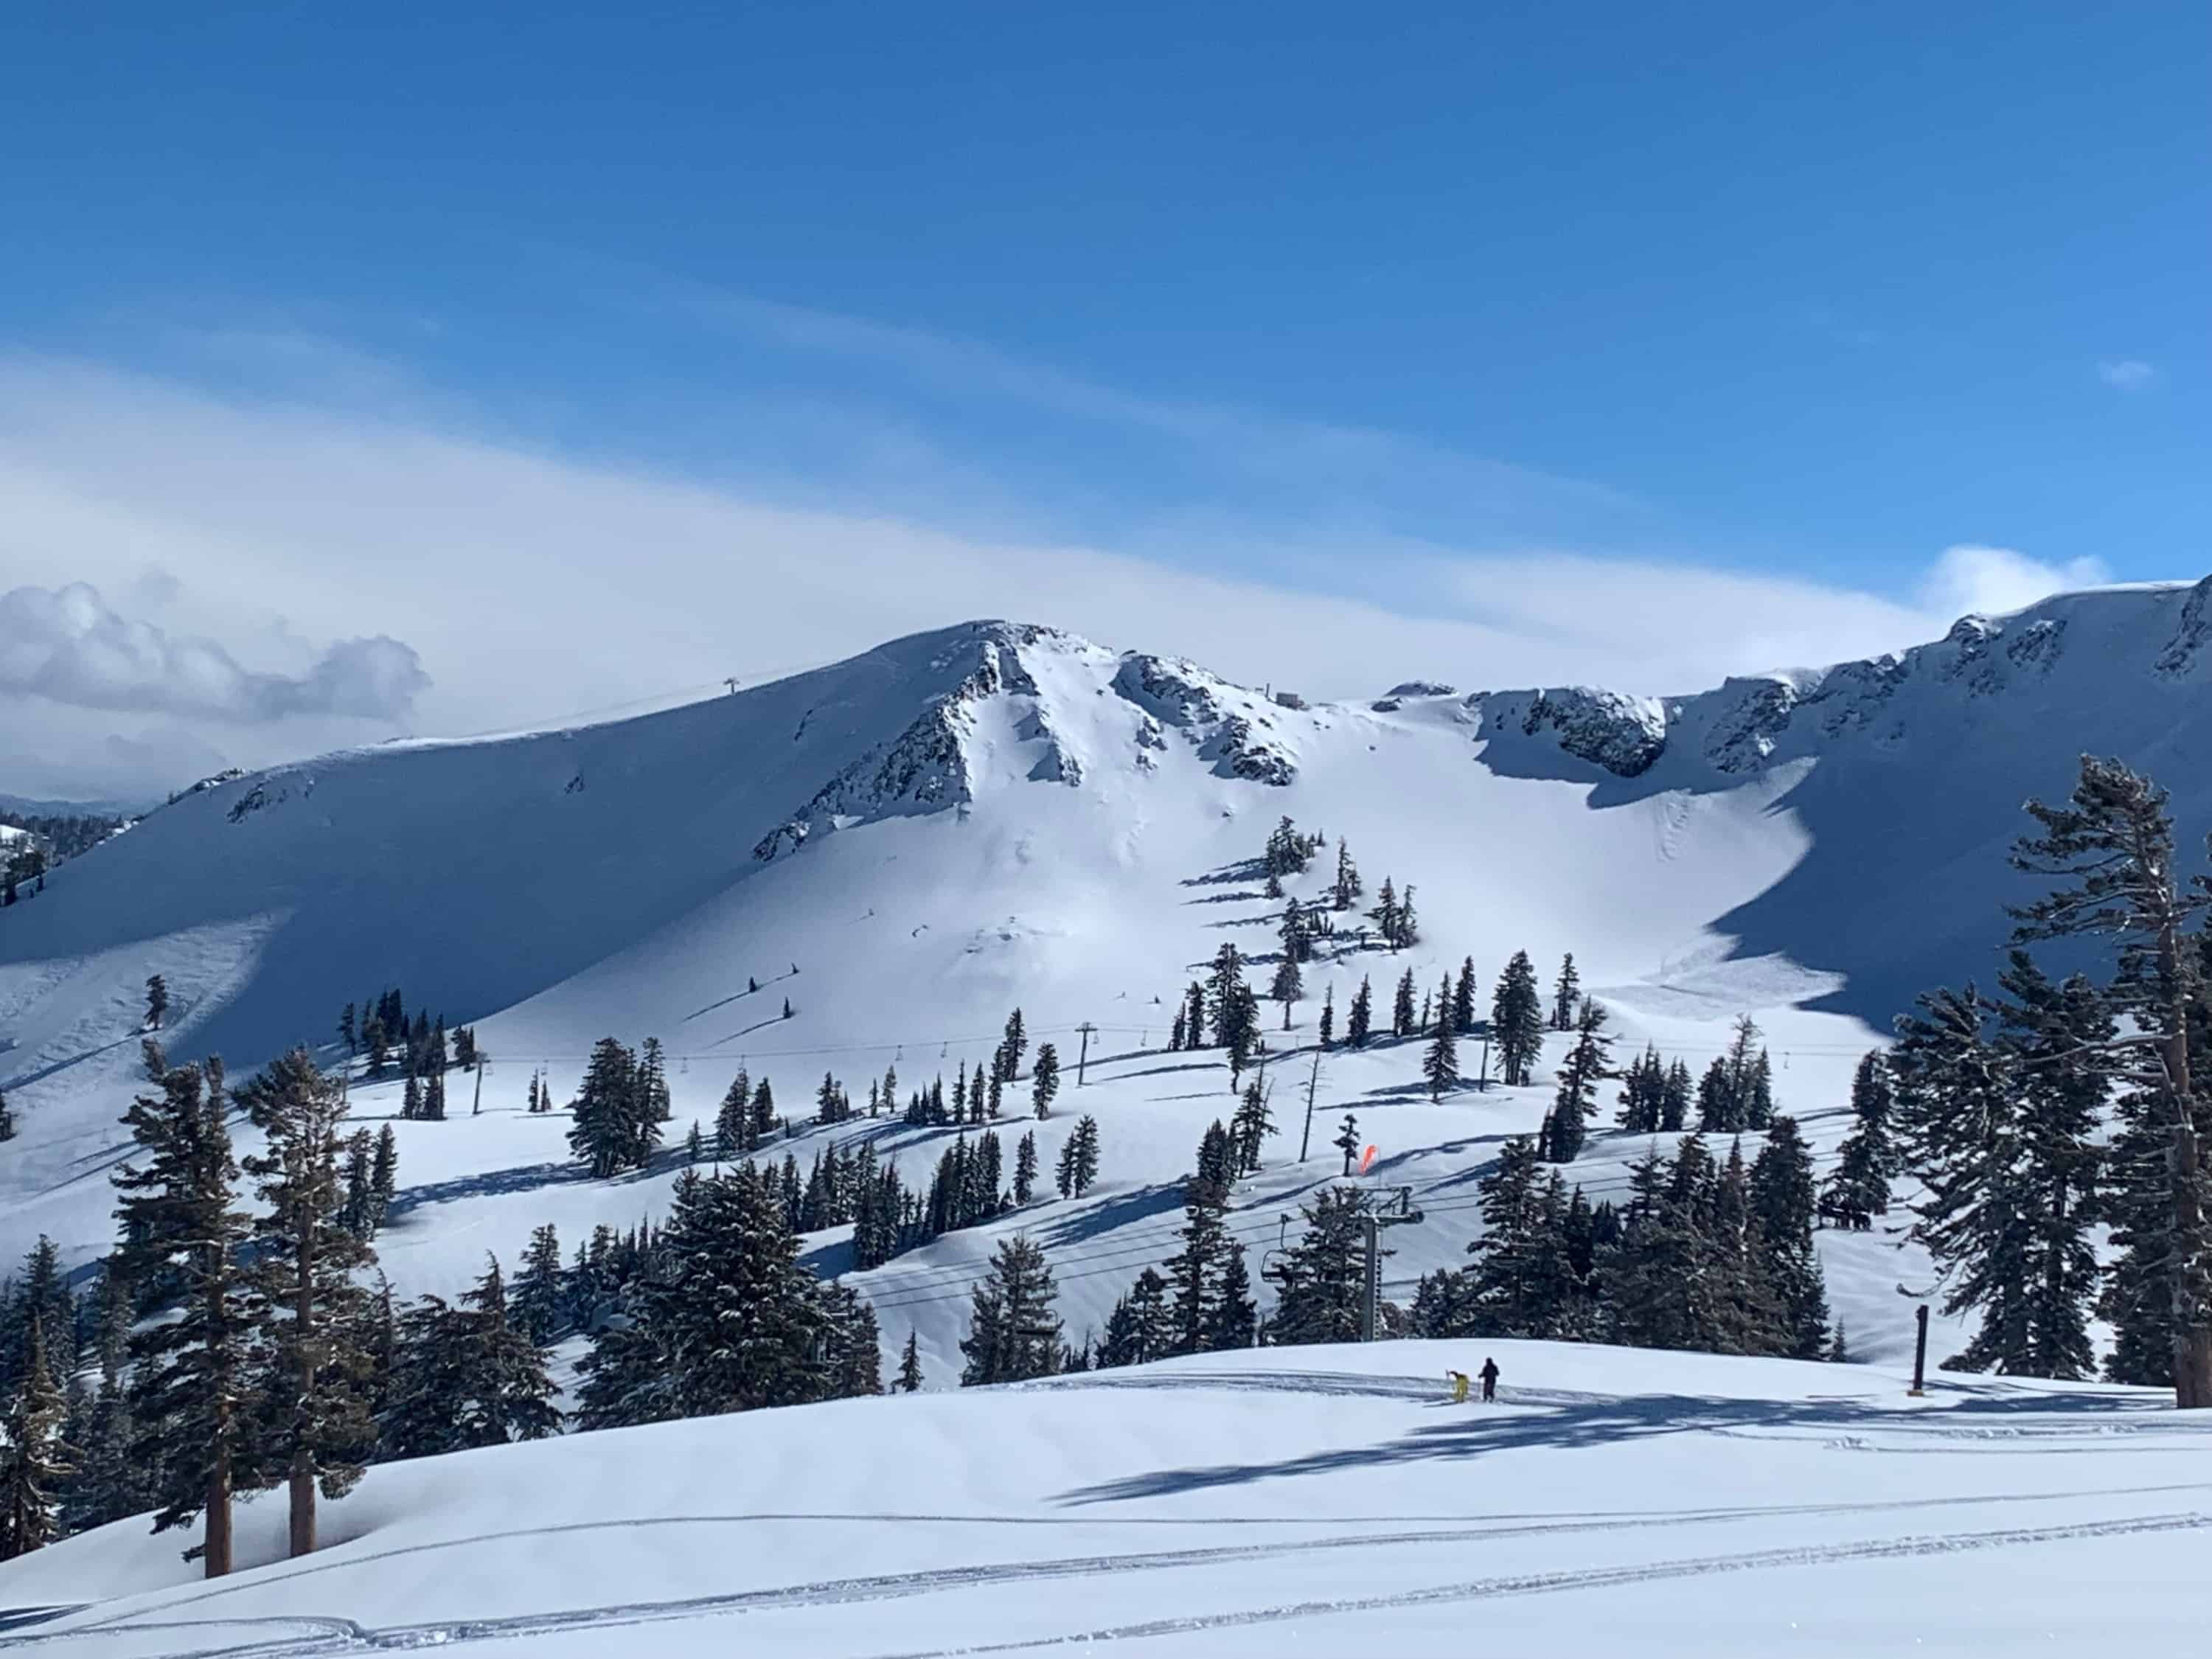 Headwall Chair, Squaw Valley Alpine Meadows | Mountainwatch